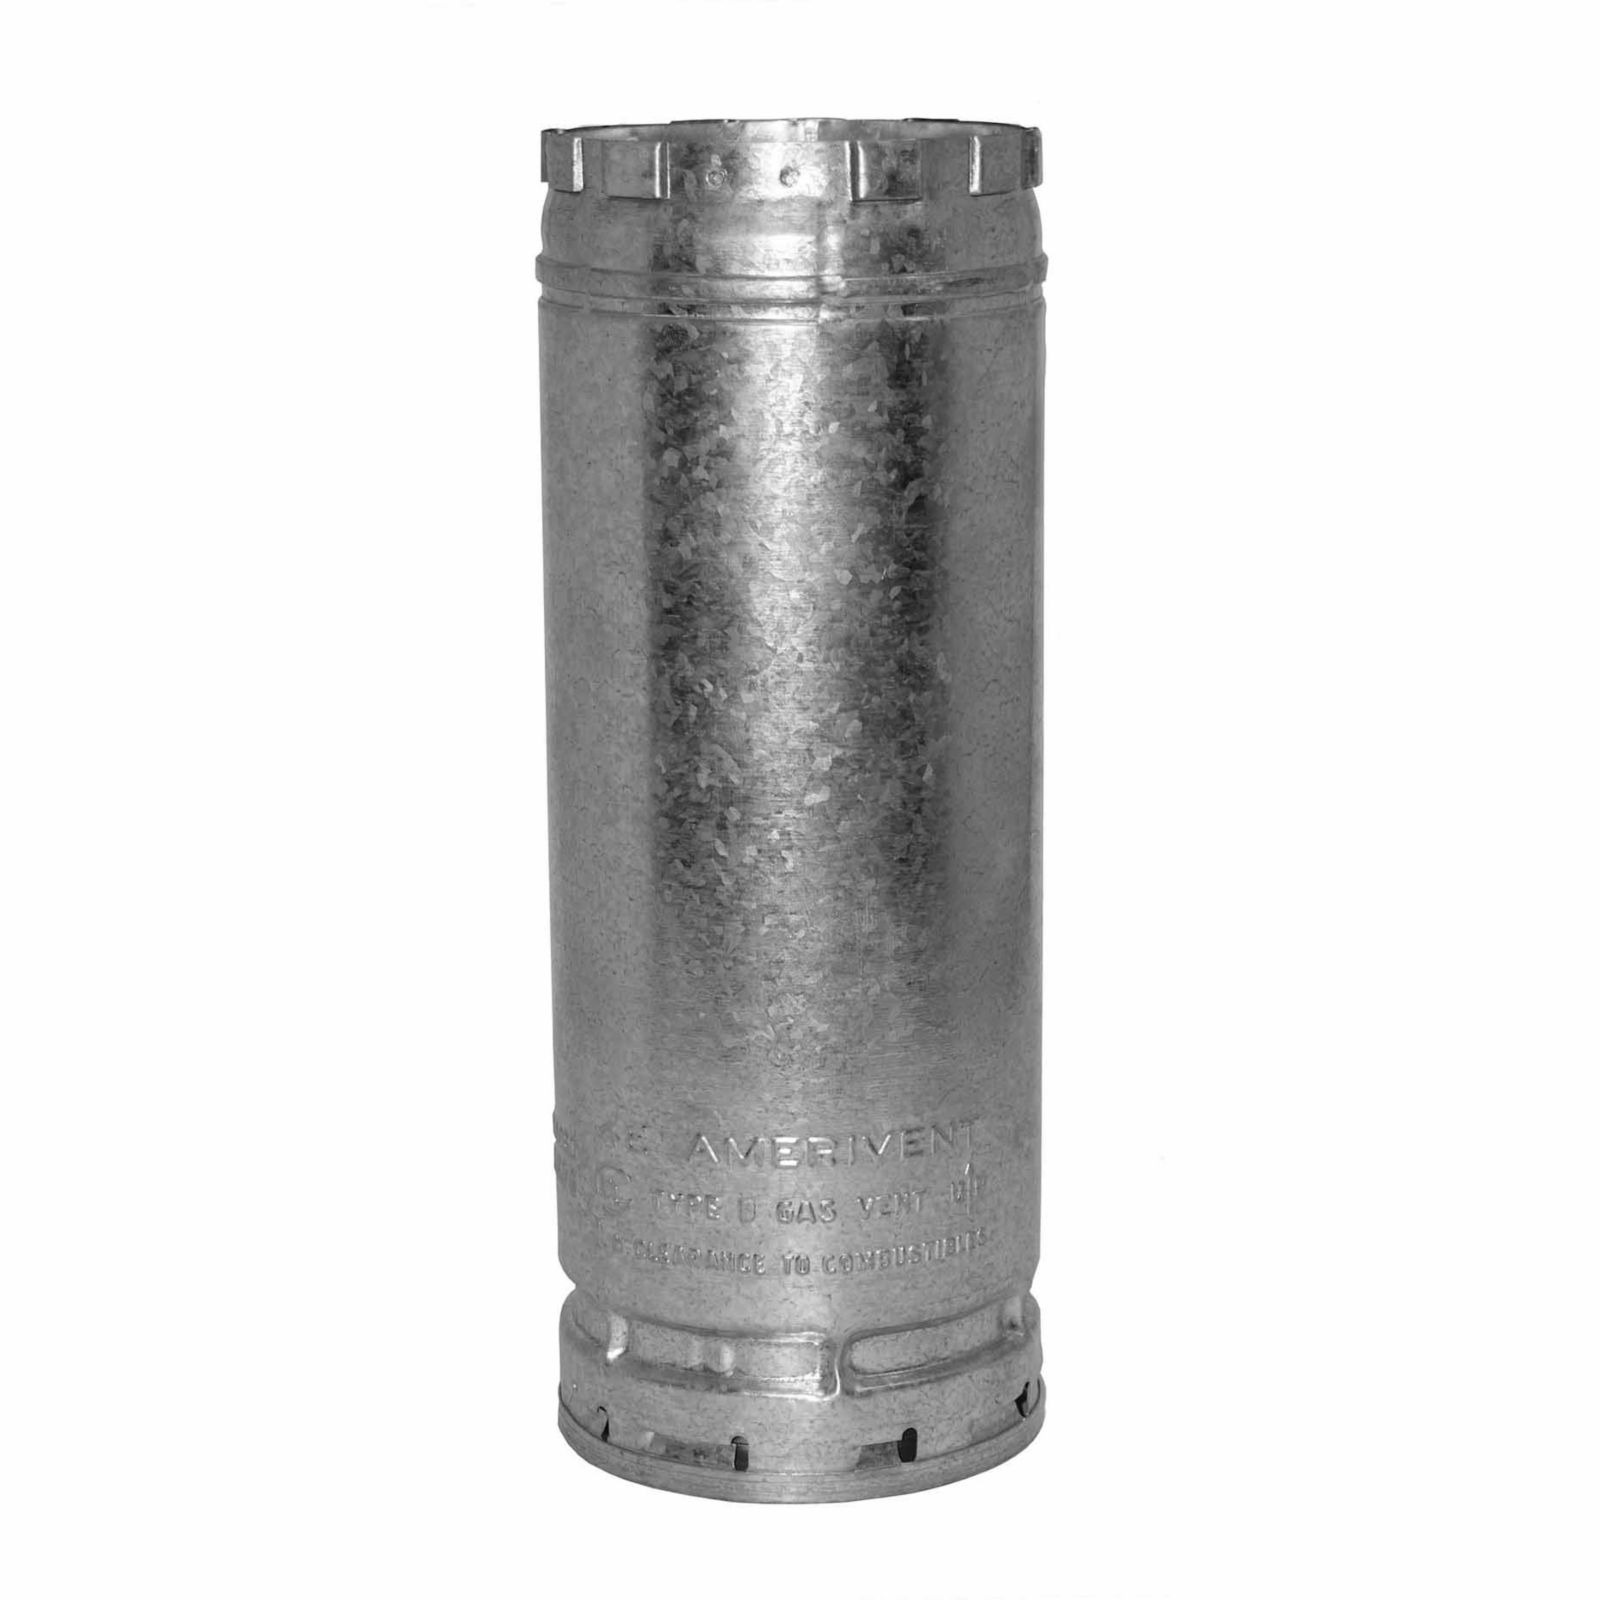 "AmeriVent 4E6 - Pipe Section Type B Gas Vent, 4"" Round X 6"" Length"